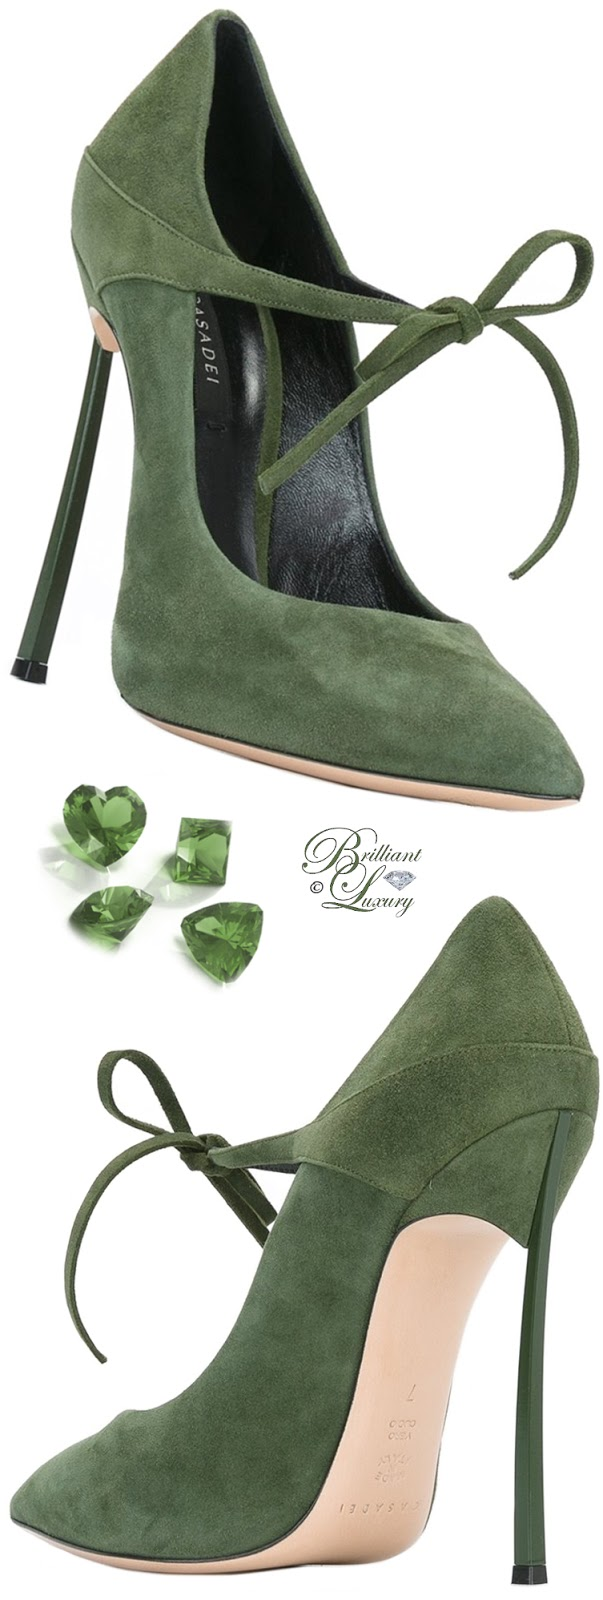 Casadei Green Lace-Up Pumps #shoes #pantone #brilliantluxury